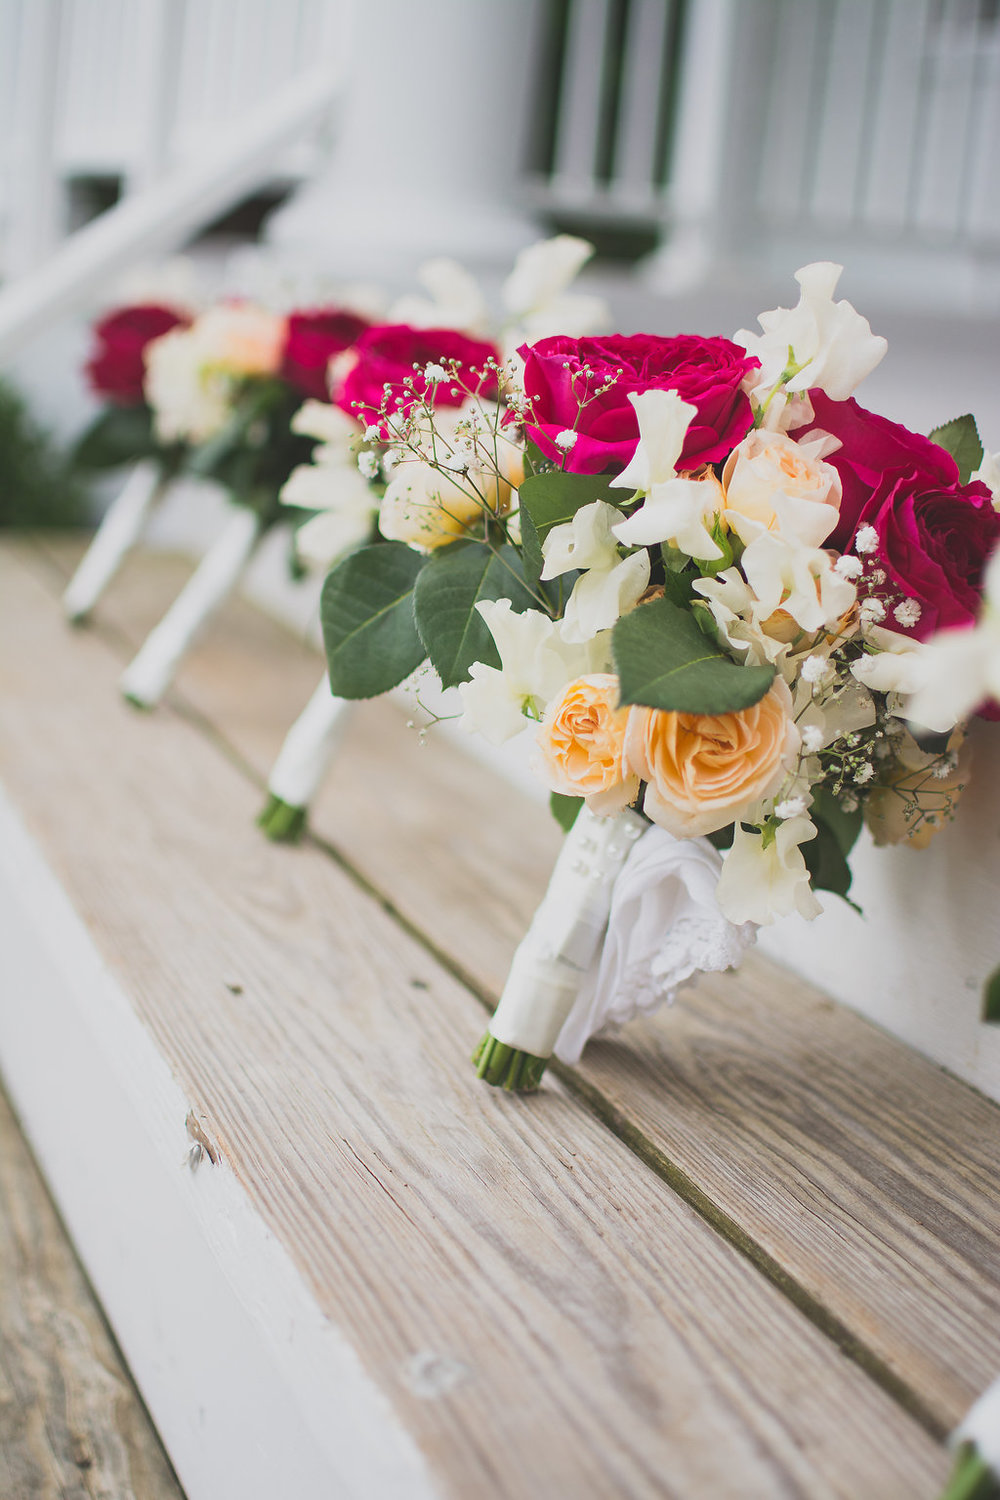 Whitehall Estate and Winery Wedding floral flowers bouquet Photo